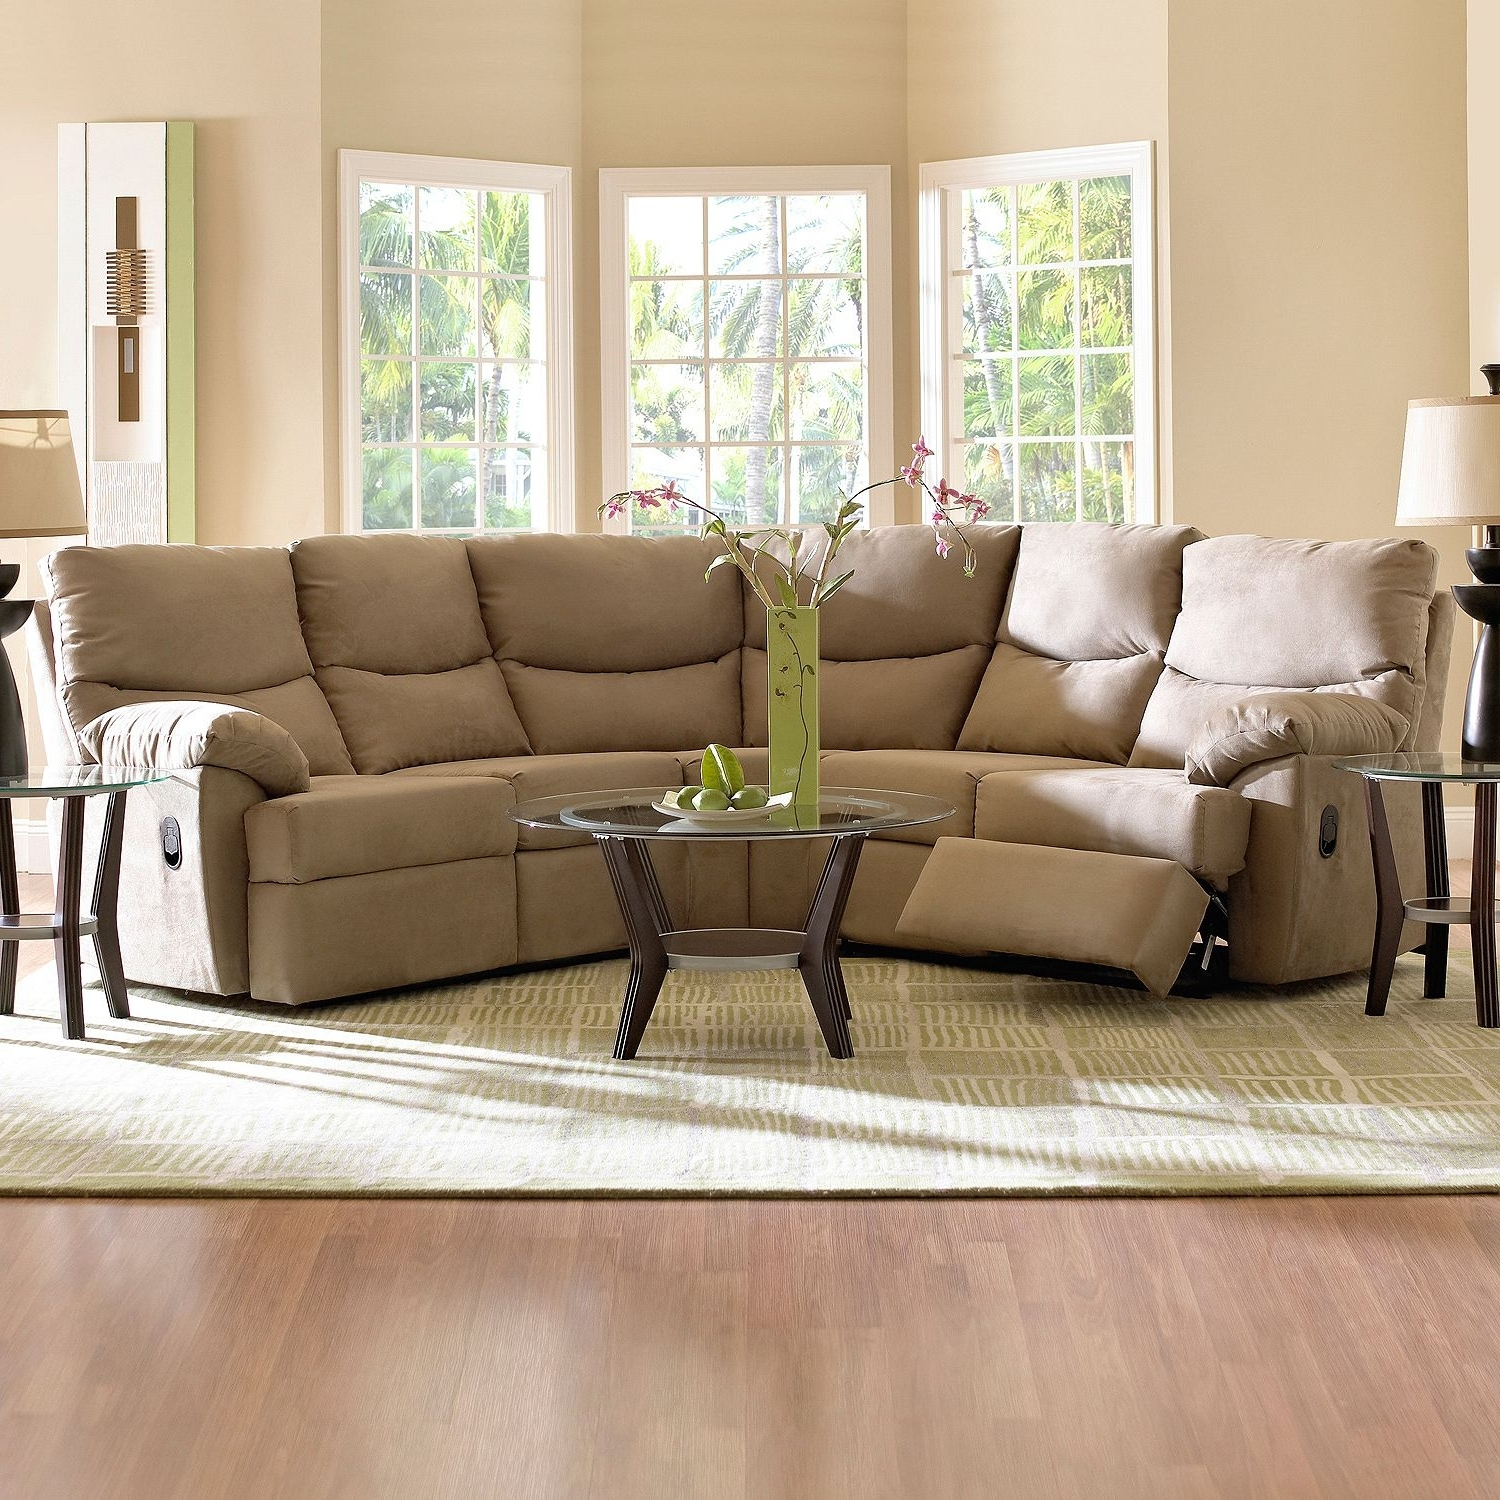 Sams Club Sectional Sofas Throughout Most Current Brantley Sectional – 2 Pc (View 14 of 15)